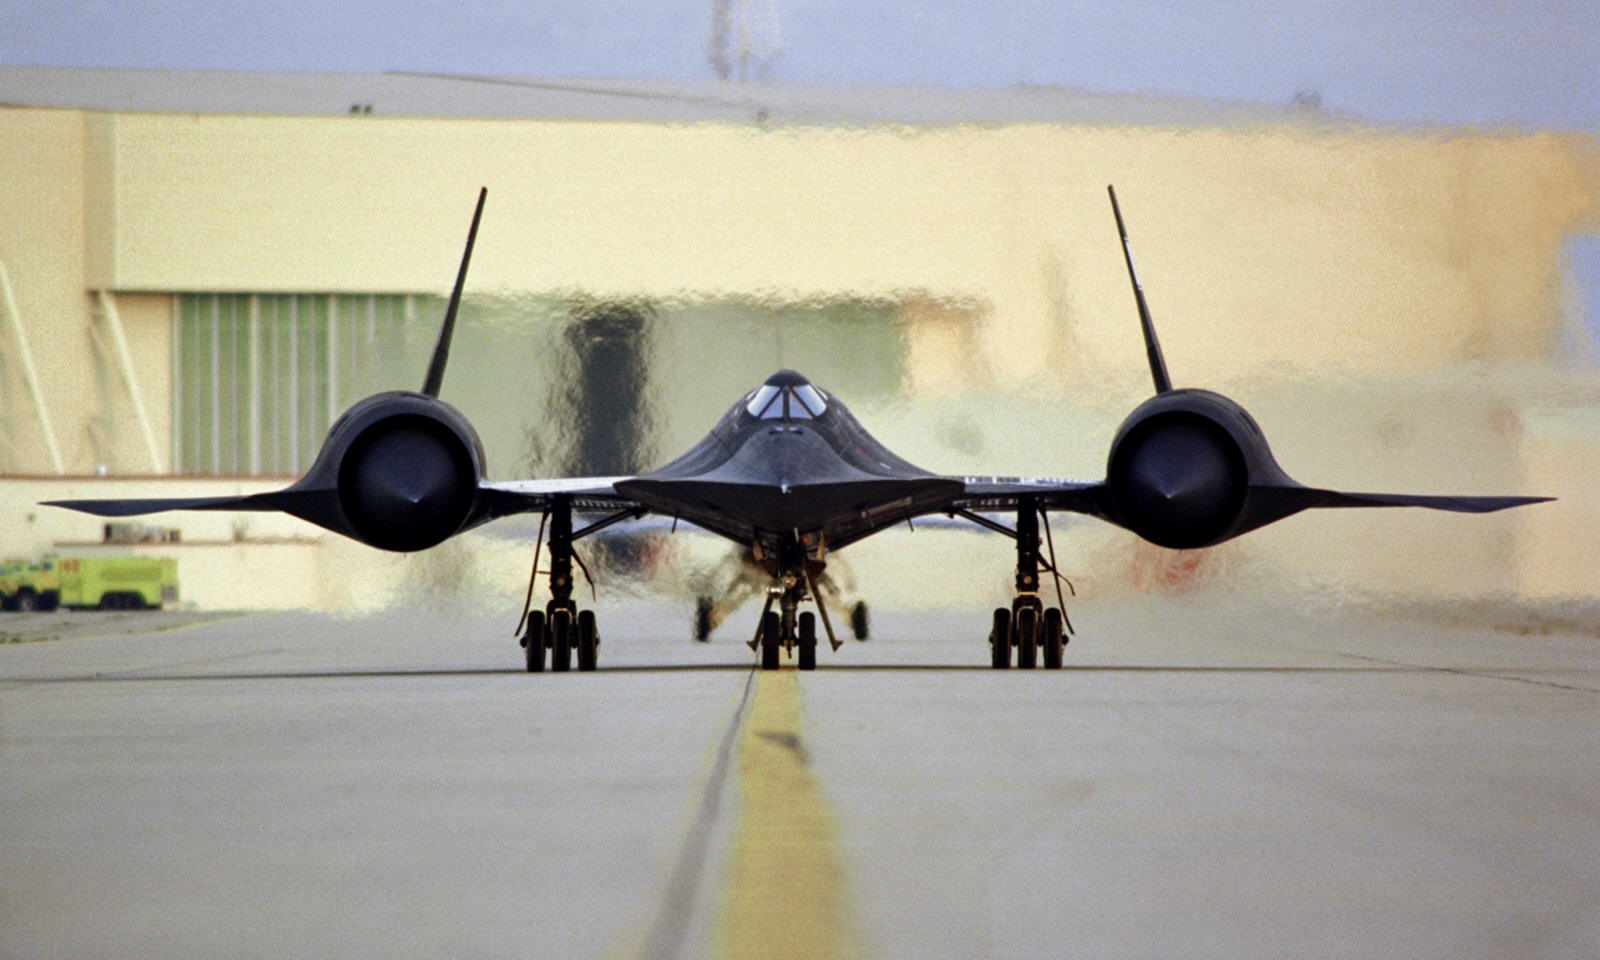 The fastest Plane in the World – SR-71 Blackbird